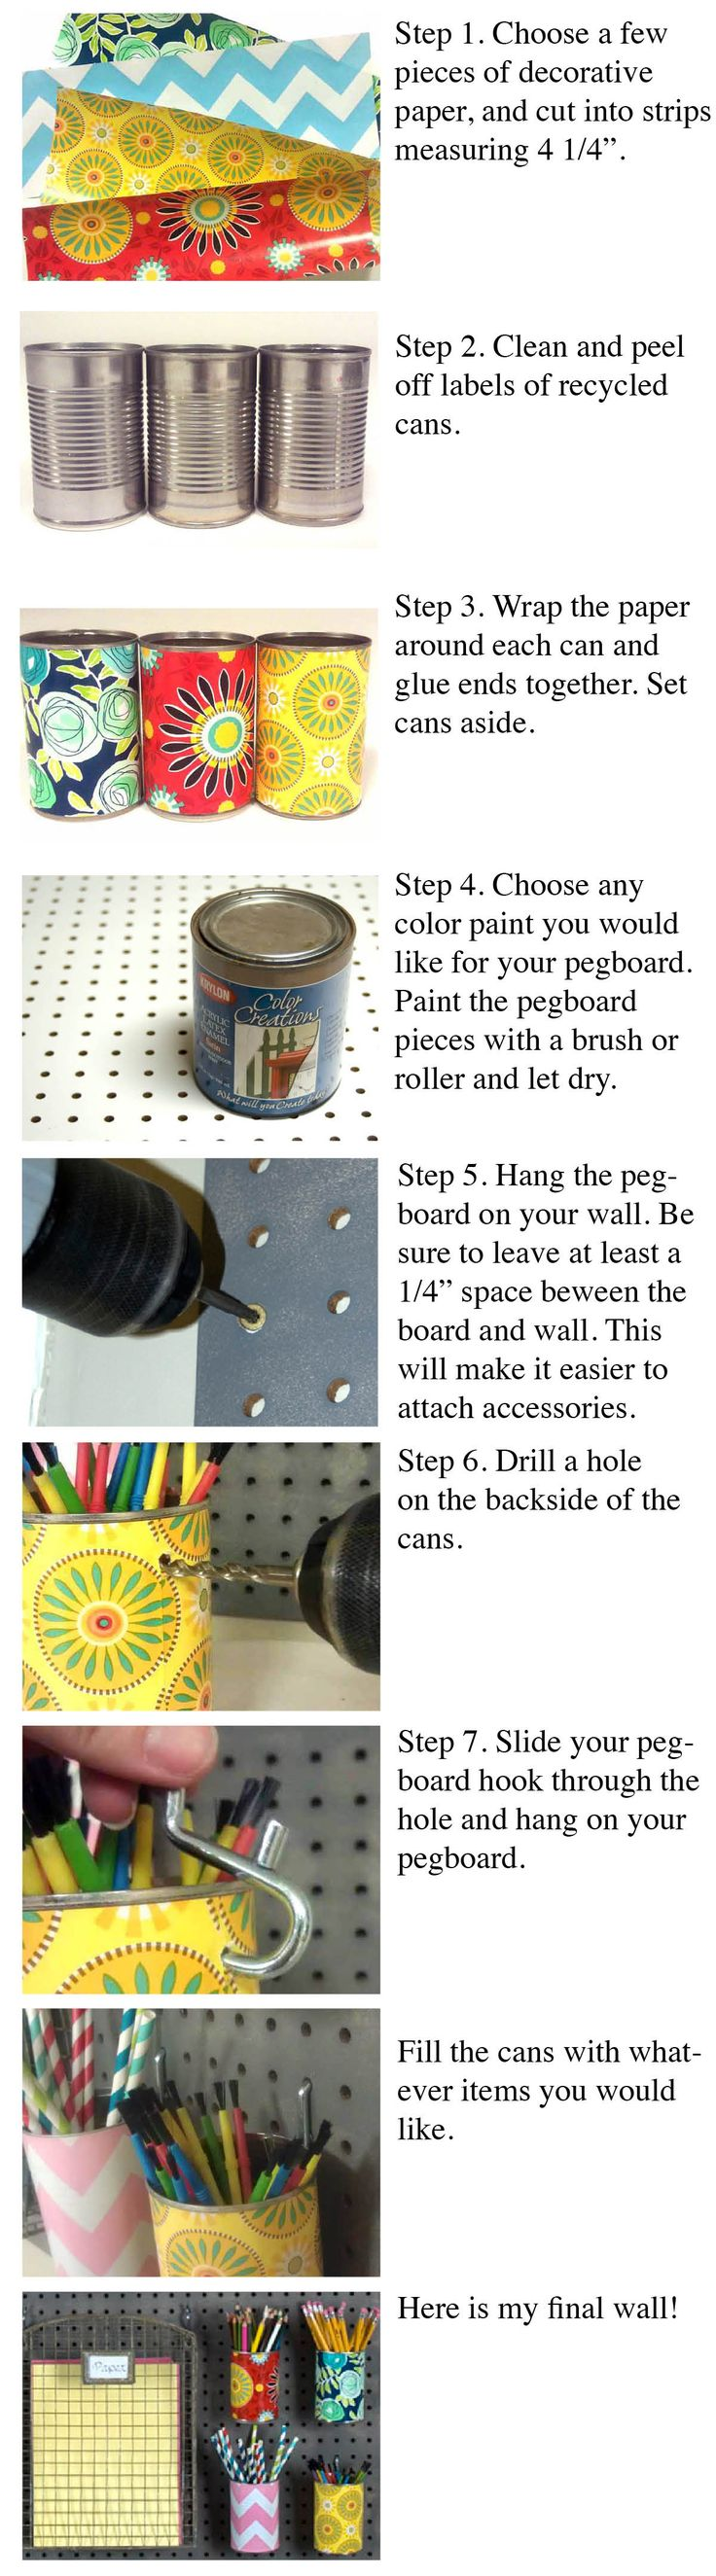 Learn how to create new looks with pegboard and accessories!